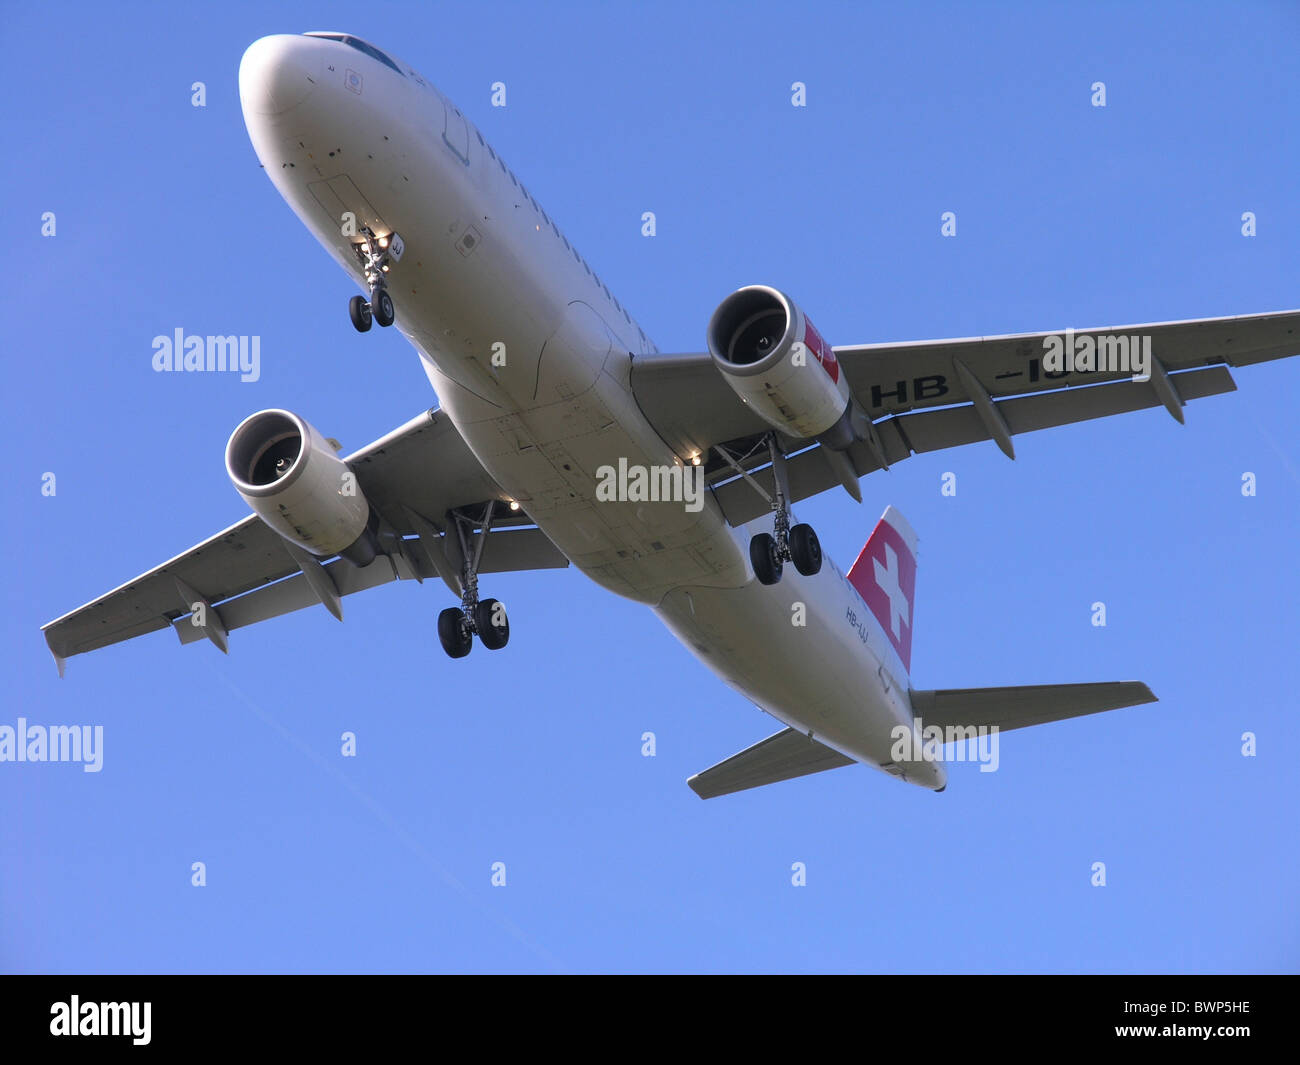 Airbus A320-214 Swiss International Air Lines Flying Jet Airplane Plane Aircraft noise Sky Travel Traveling - Stock Image